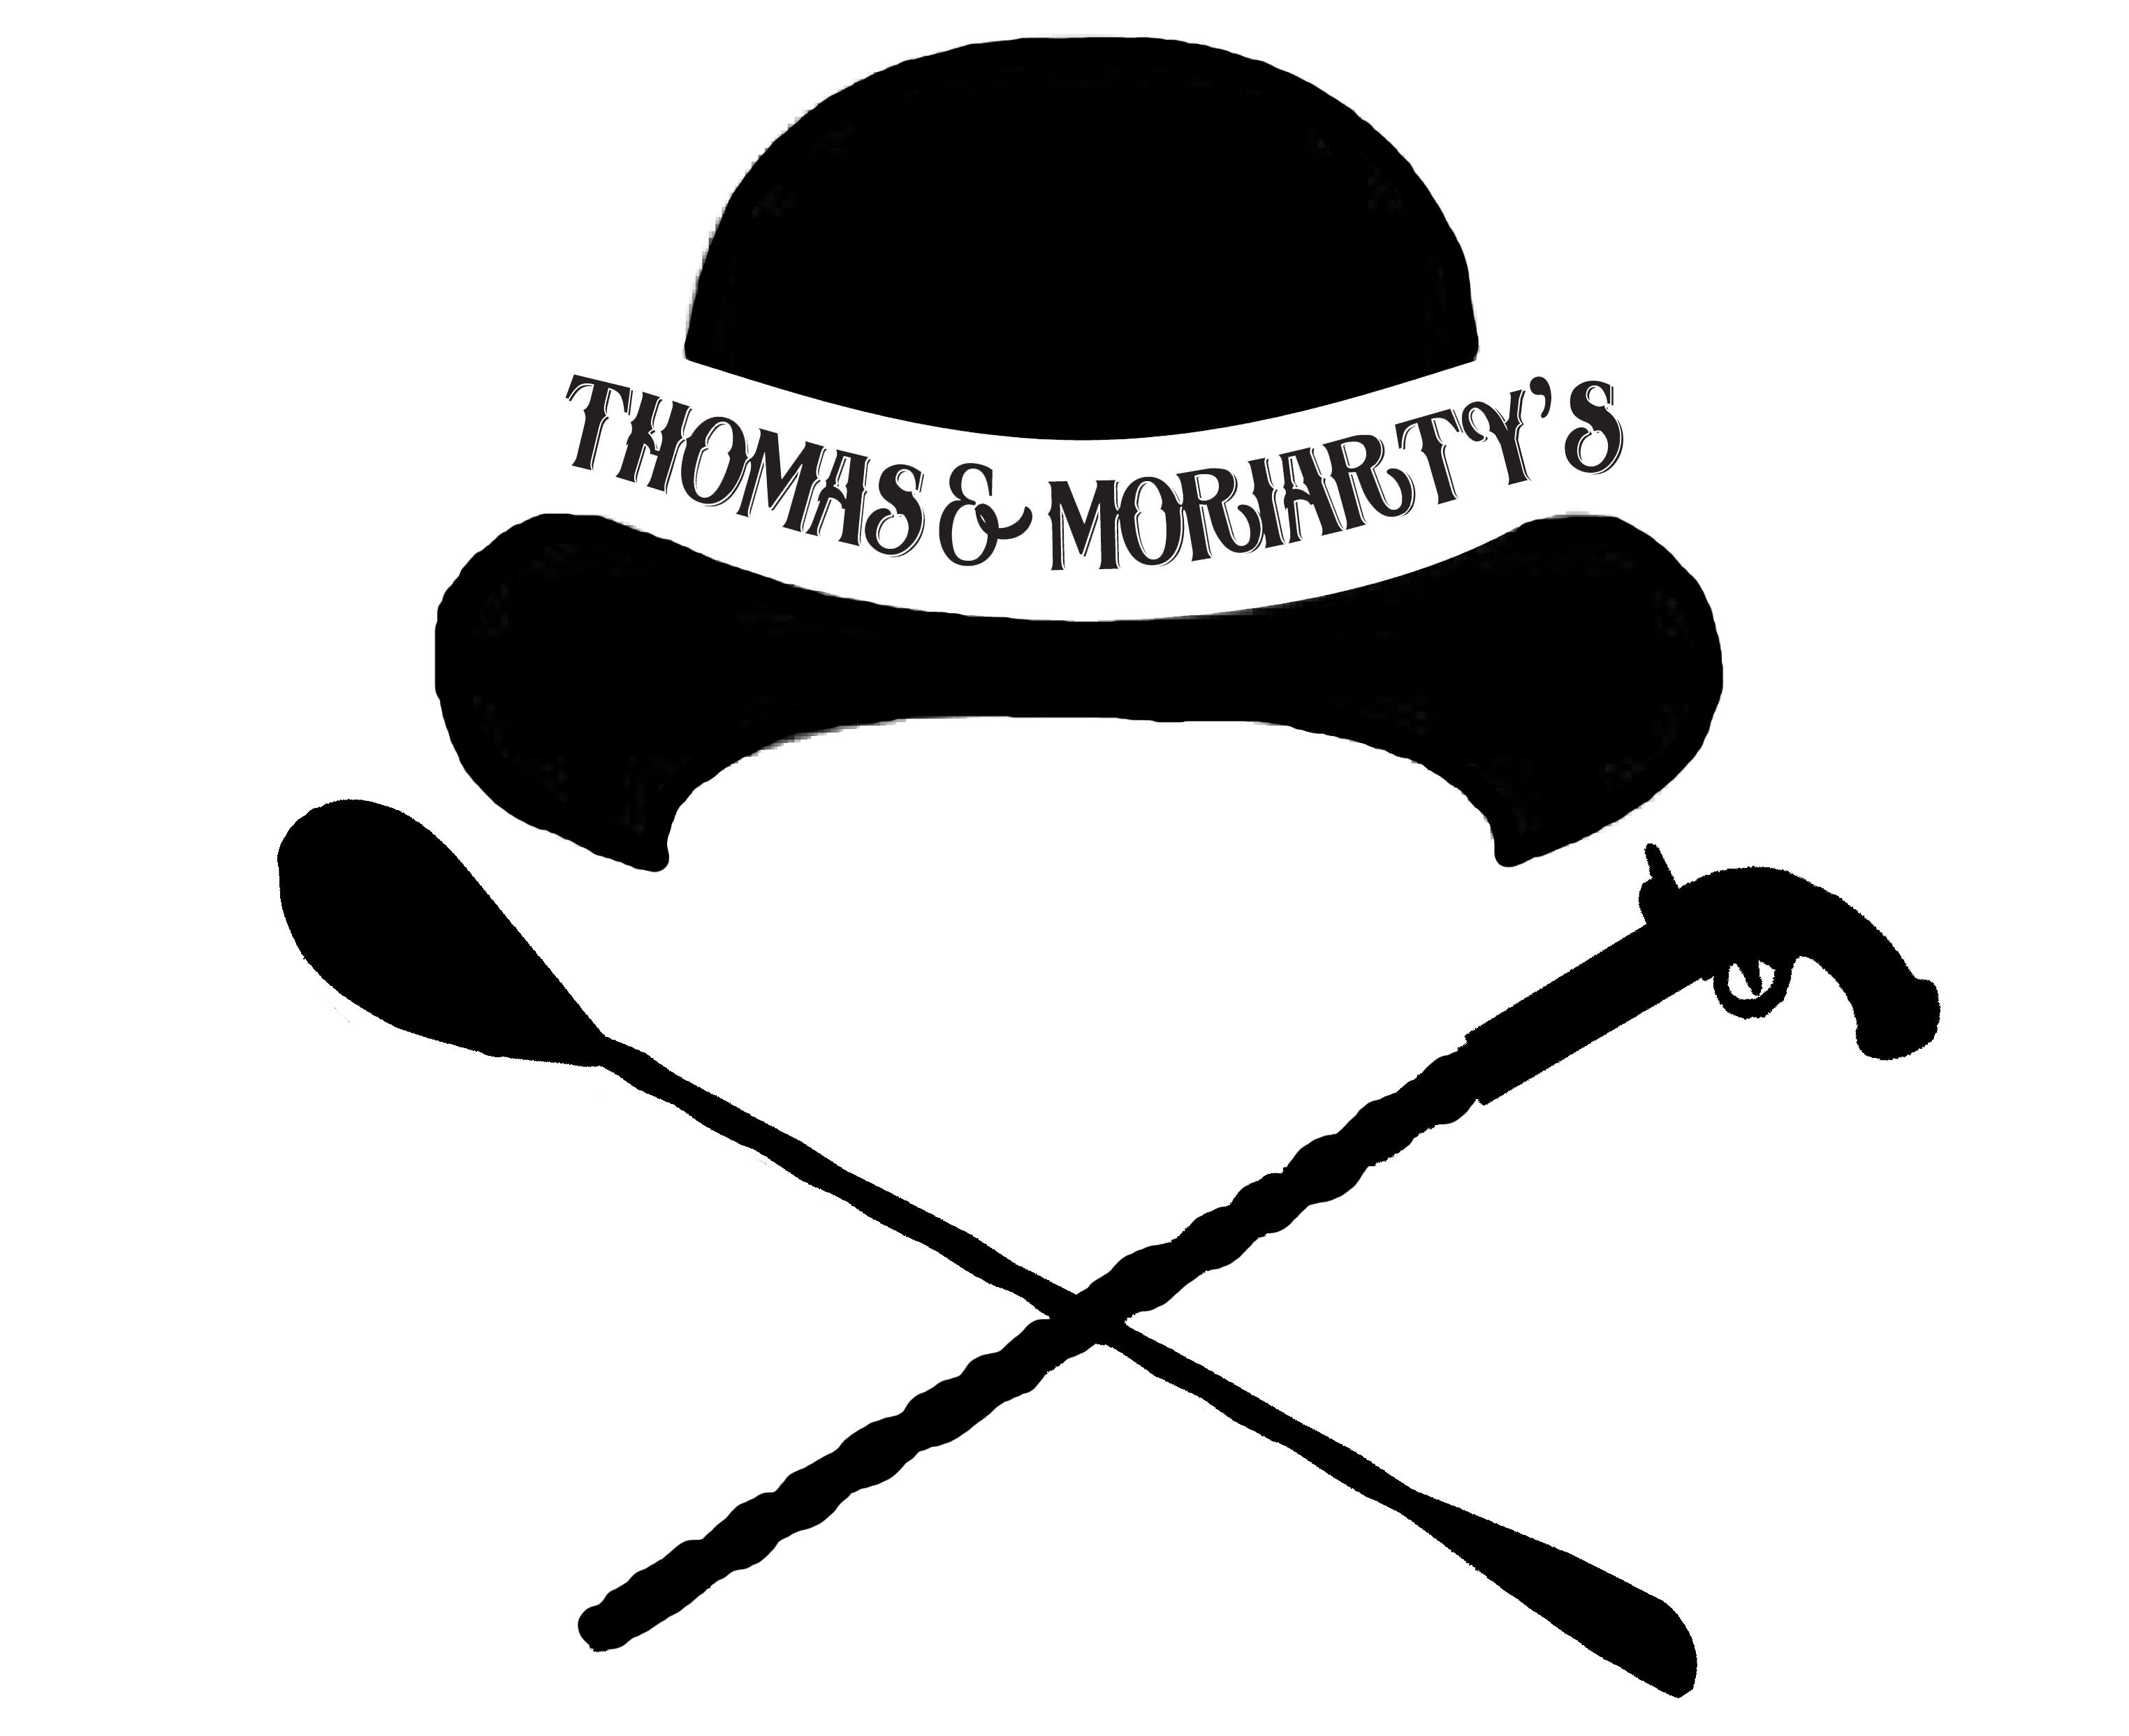 Thomas & Moriarty's